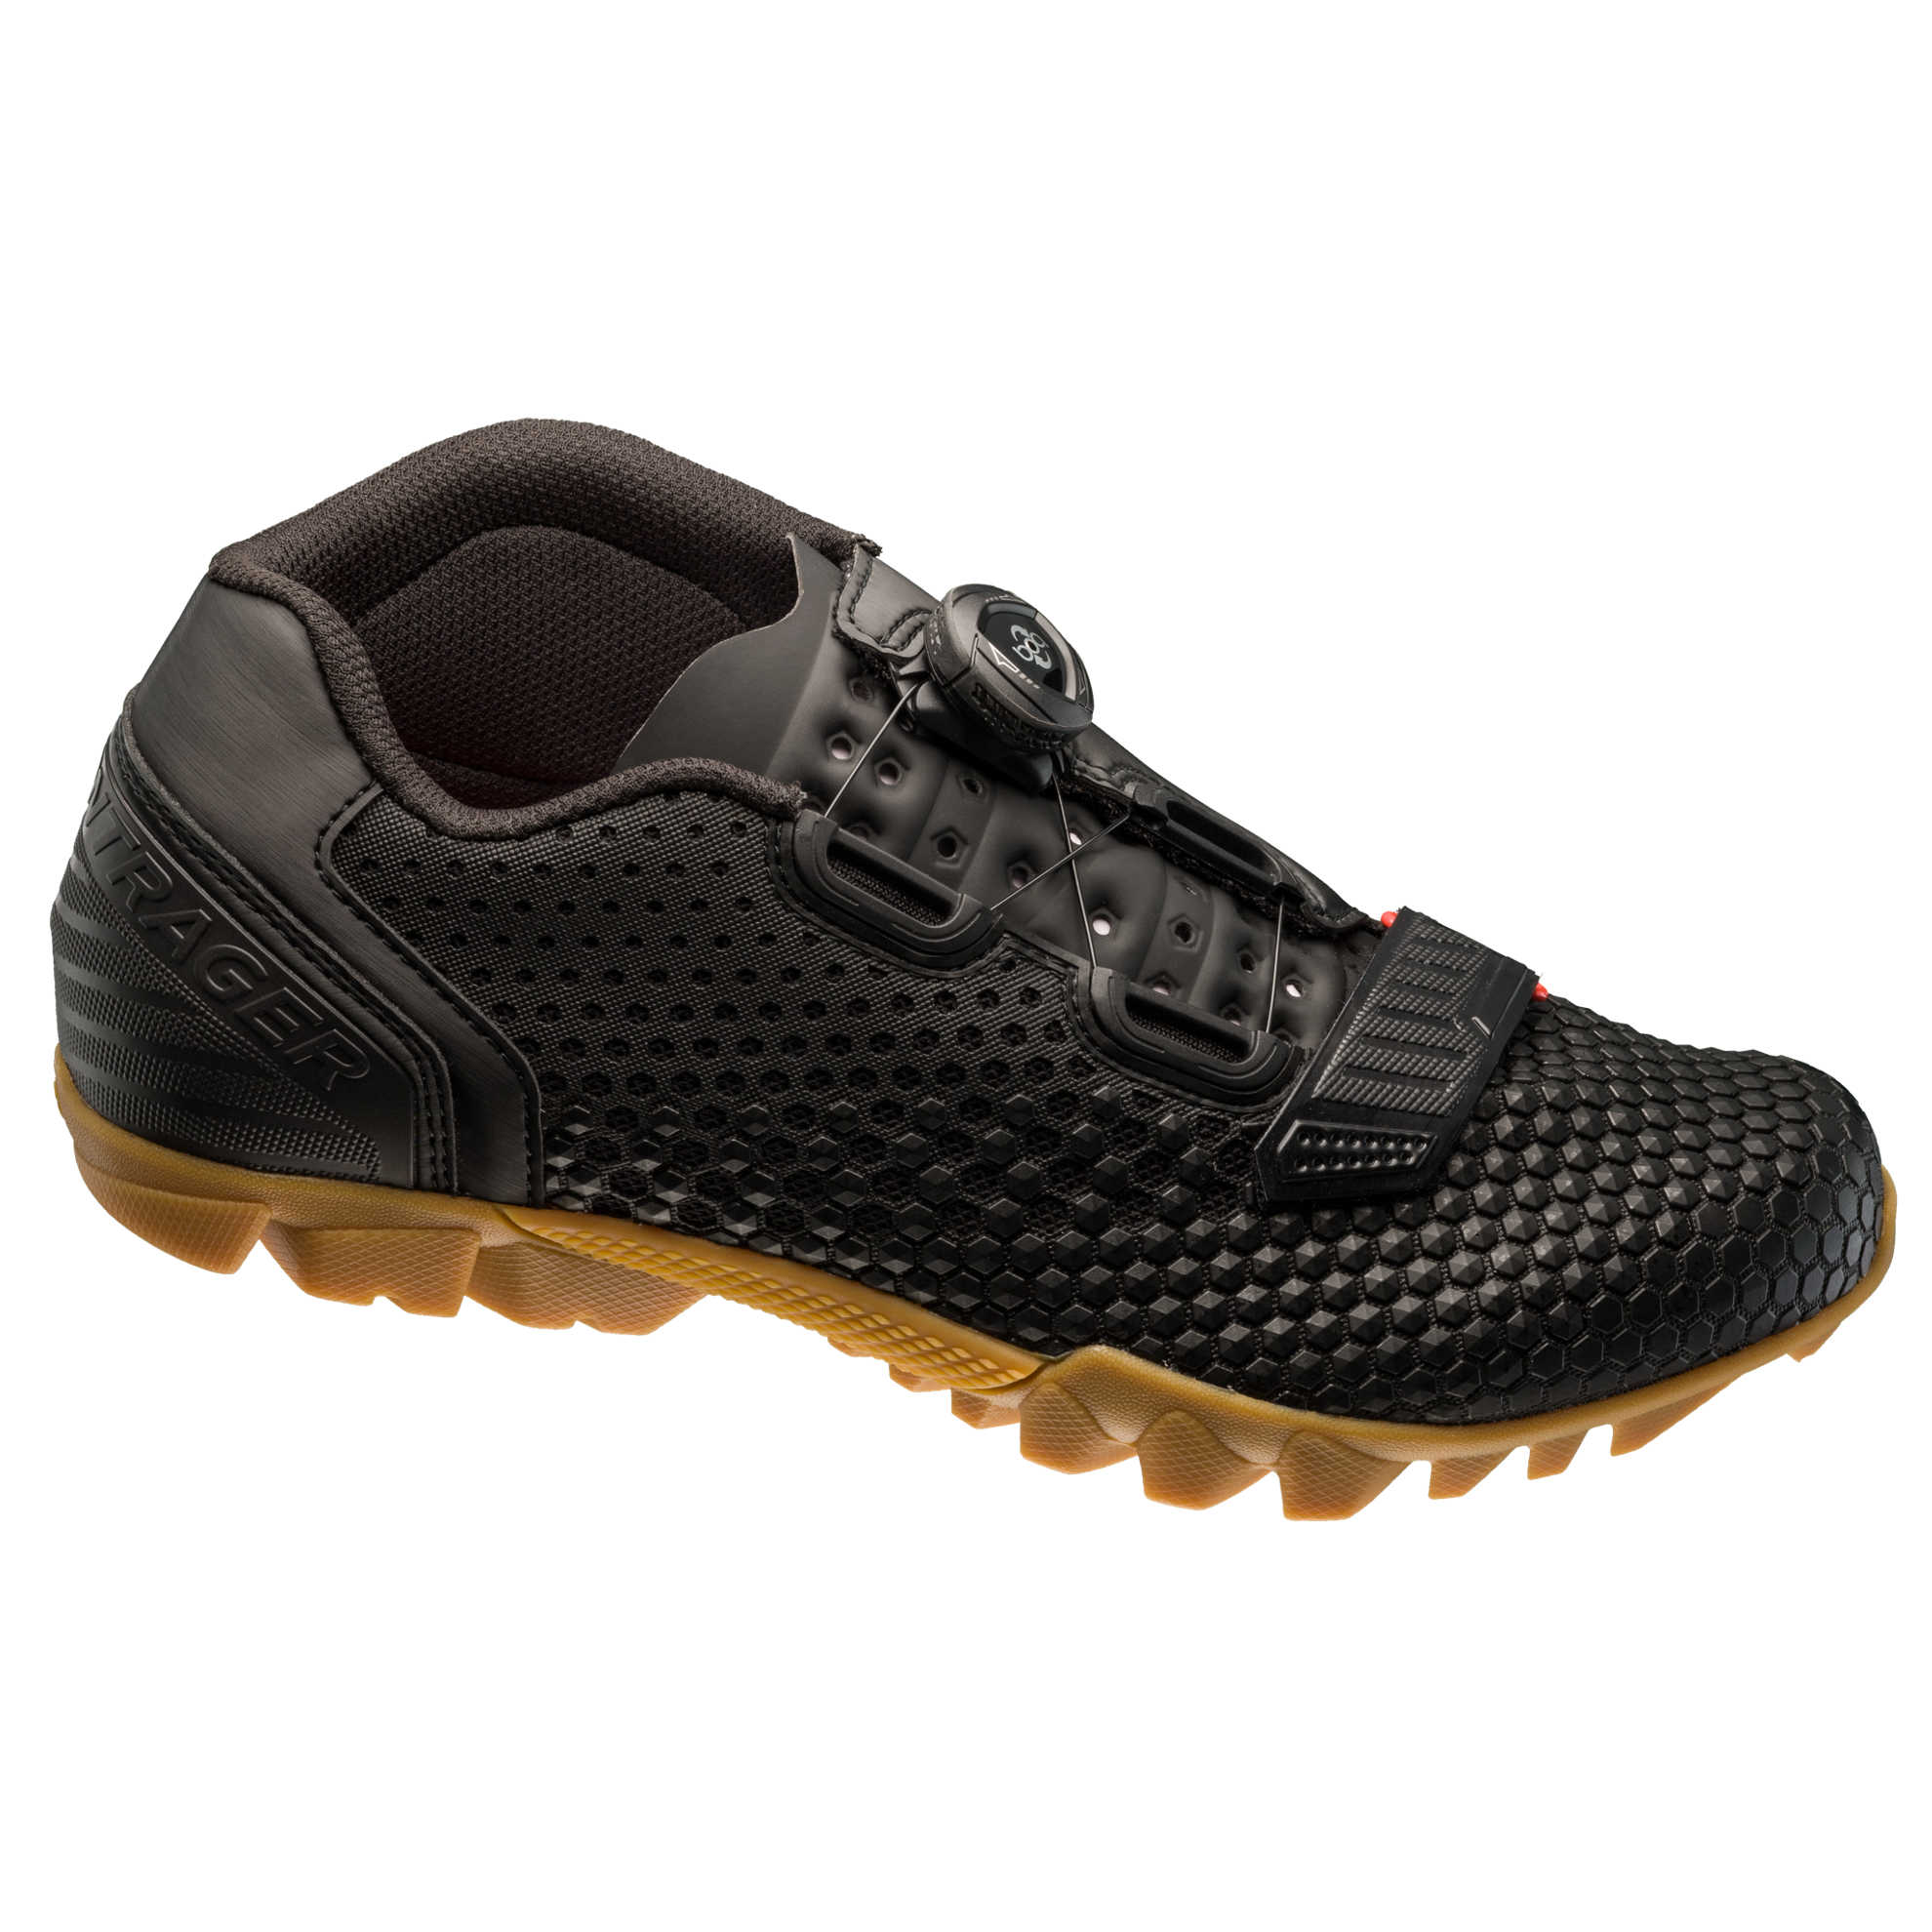 Bontrager Rhythm Shoe : Black